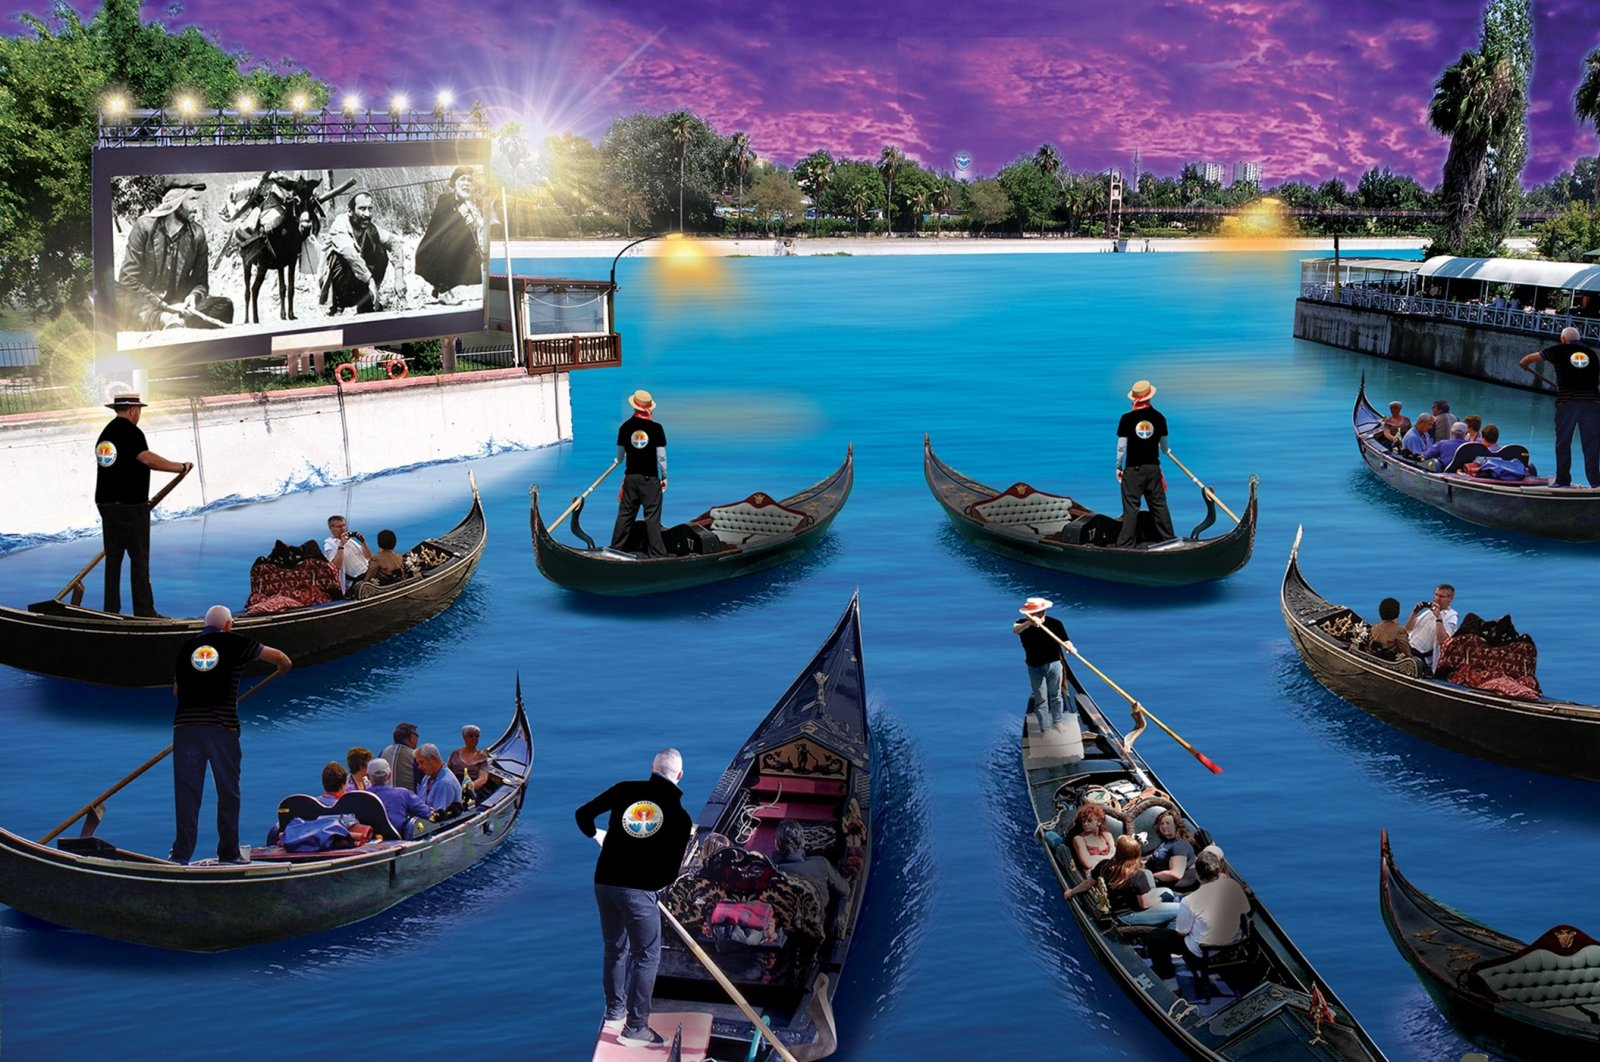 An illustration shows the gondola project being held as part of the 27th International Golden Boll Film Festival, Sept. 11, 2020. (İHA PHOTO)